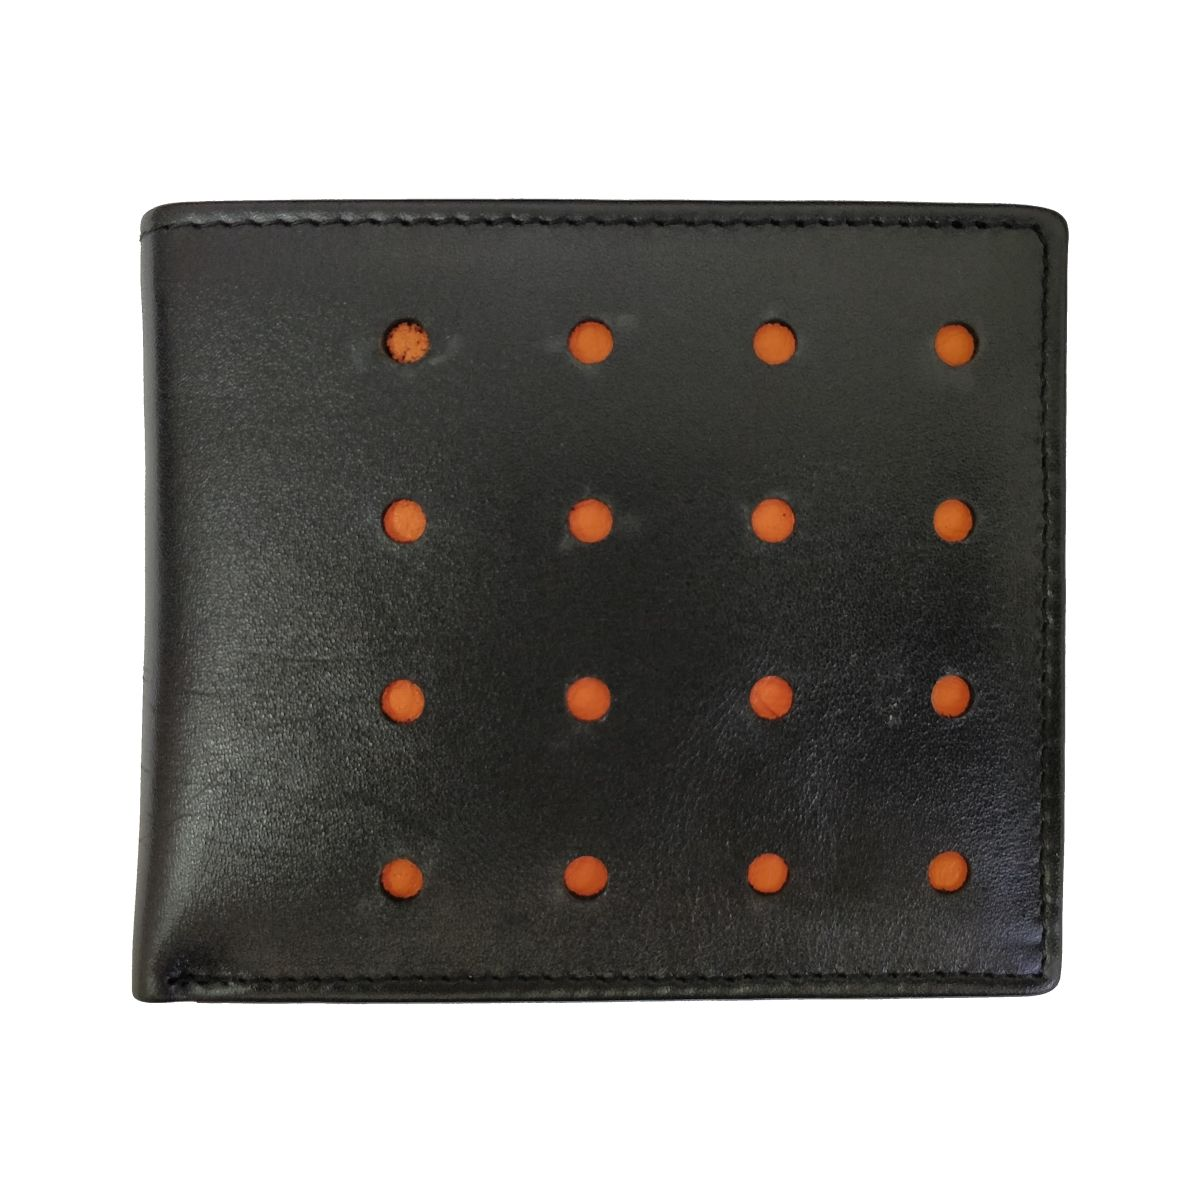 Leather Wallet Sixteen Holes With Coin Pouch - Black